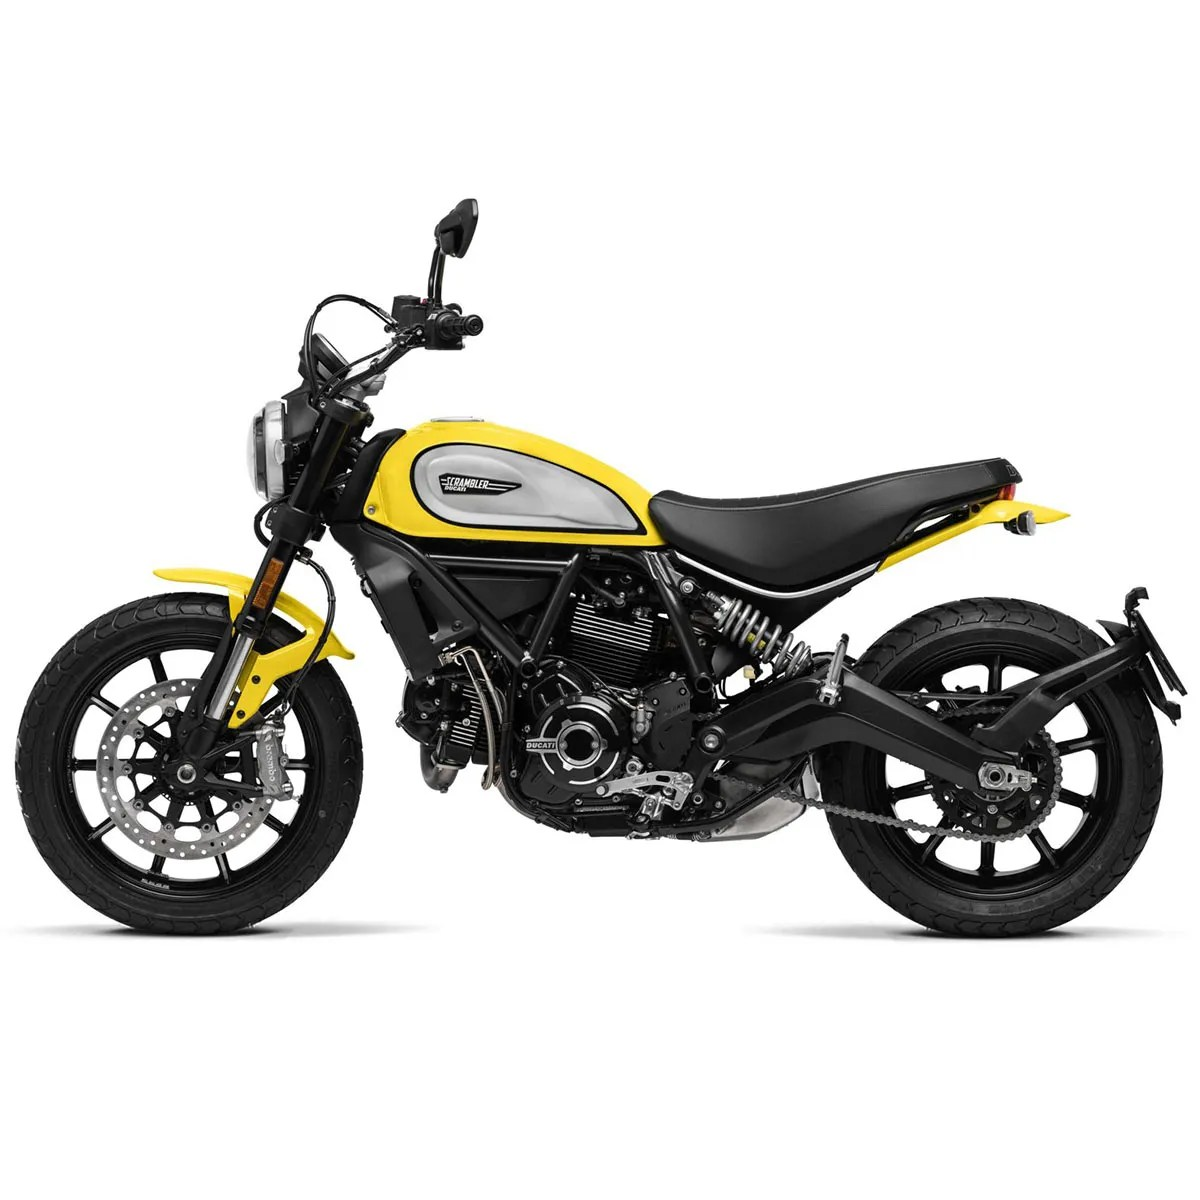 DUCATI-SCRAMBLER-1100-ICON-2020-62-YELLOW